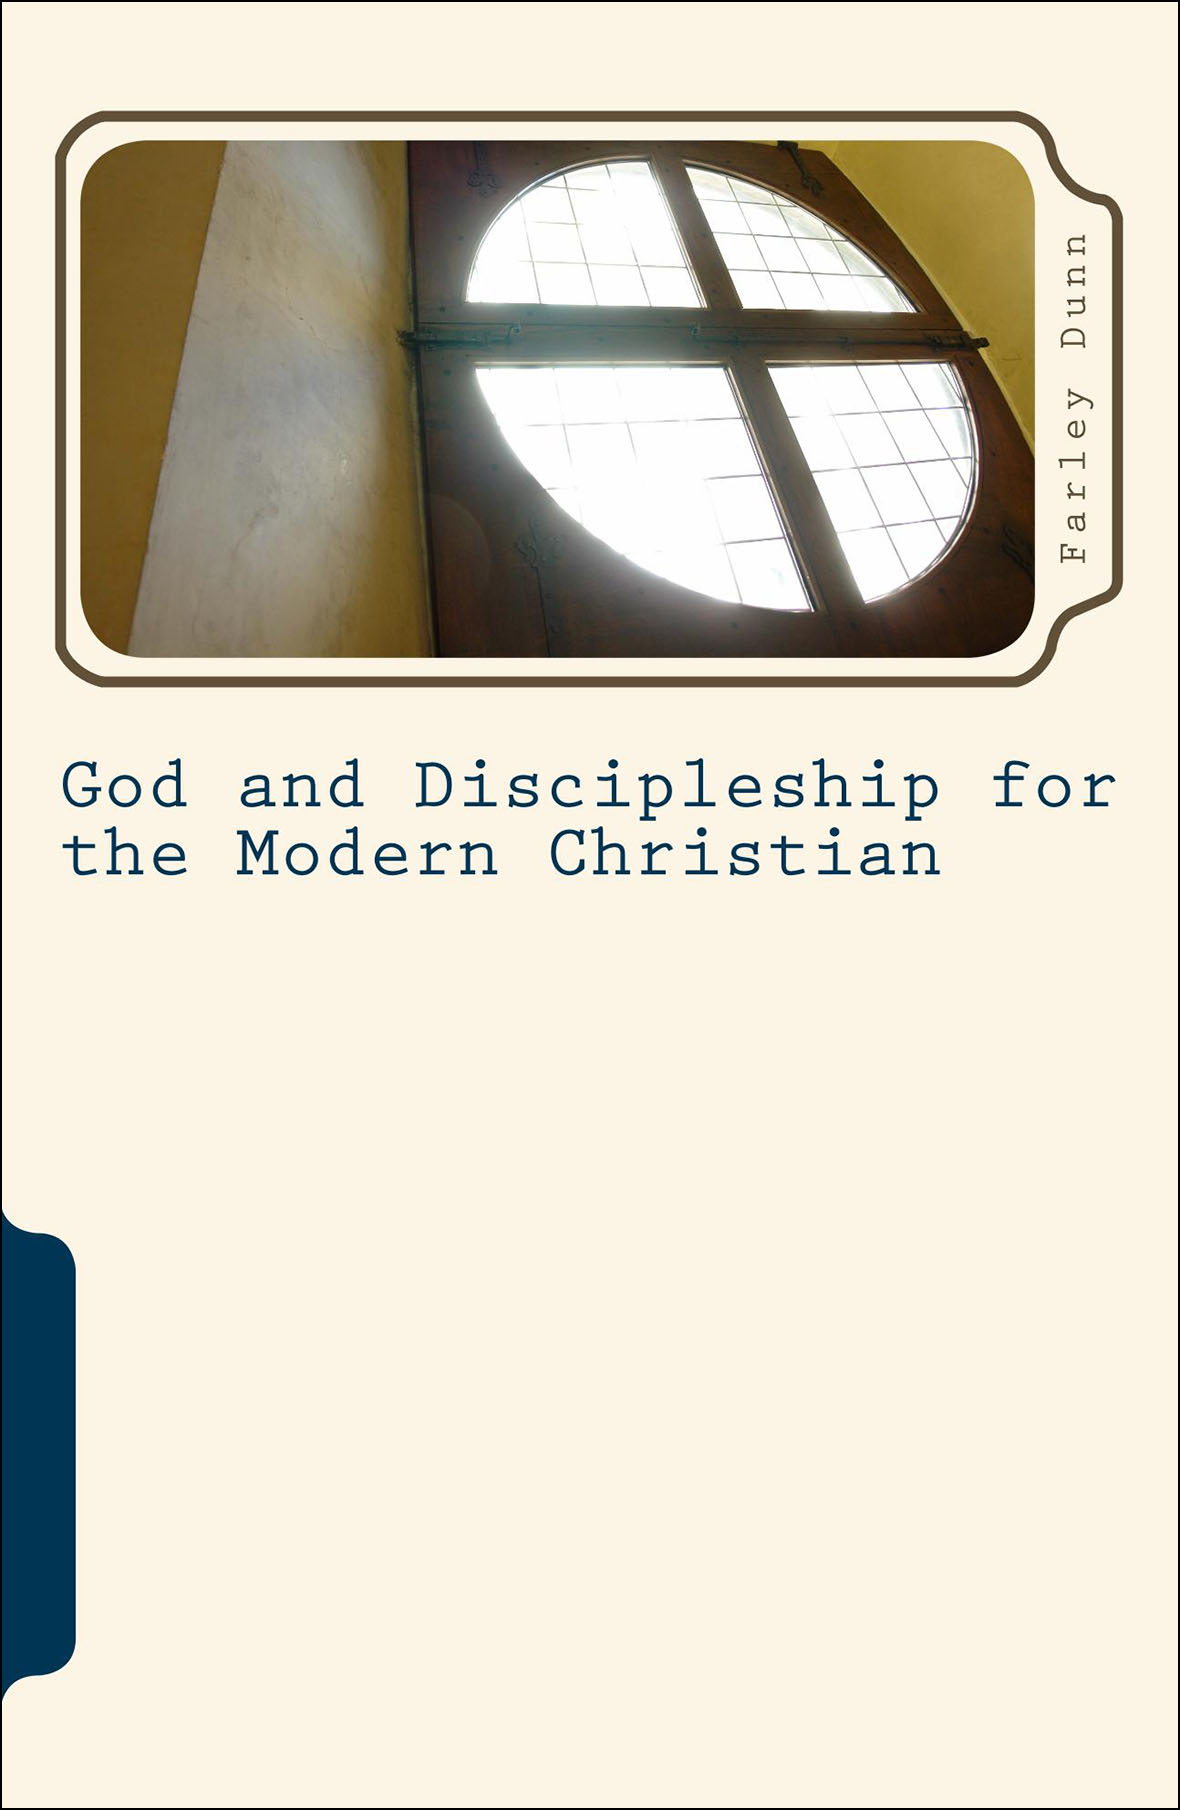 God and Discipleship Cover for web insertion Ver 6